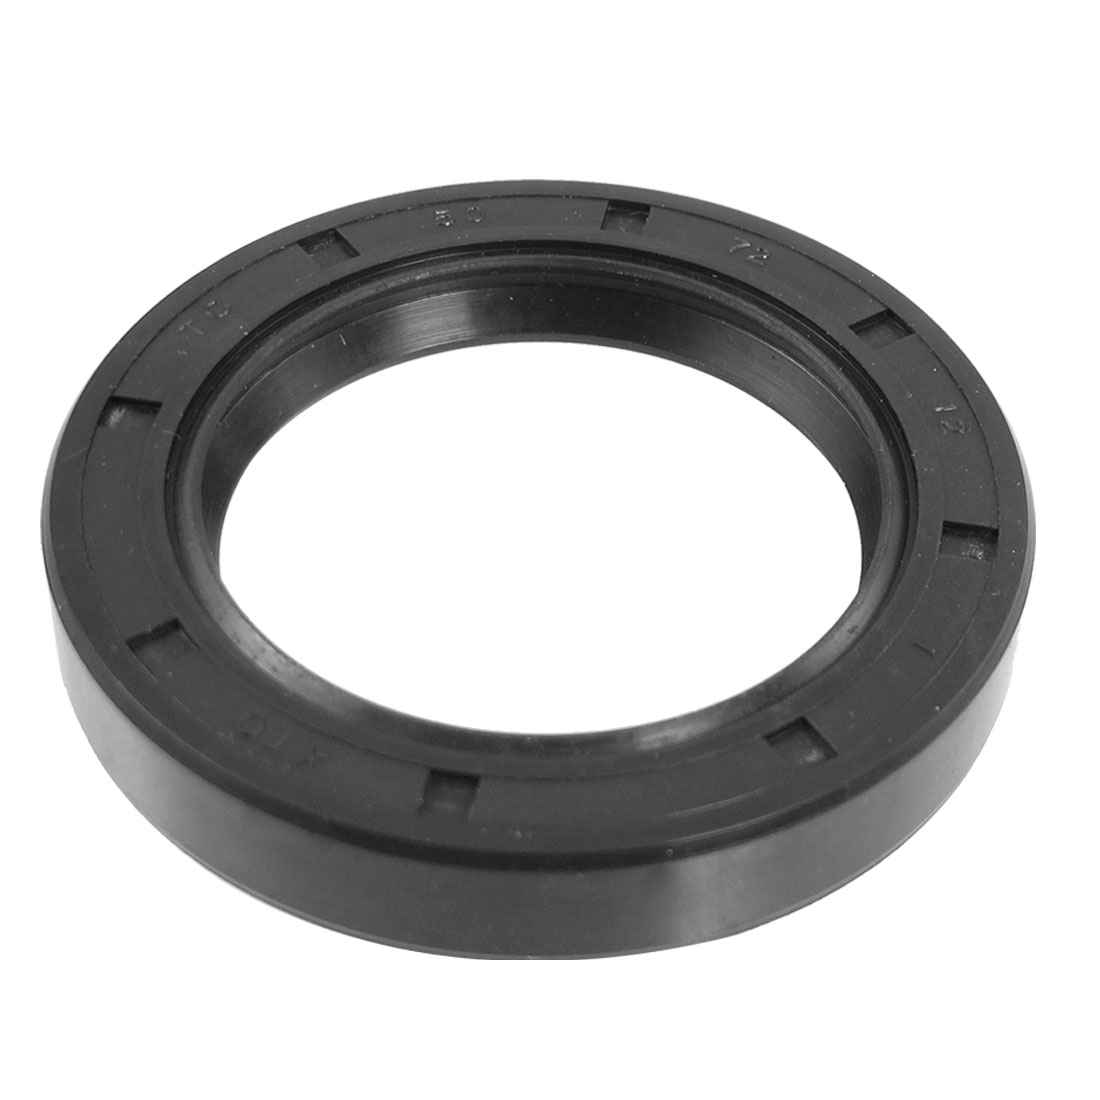 Black Nitrile Rubber Dual Lips Oil Shaft Seal TC 50mm x 72mm x 12mm